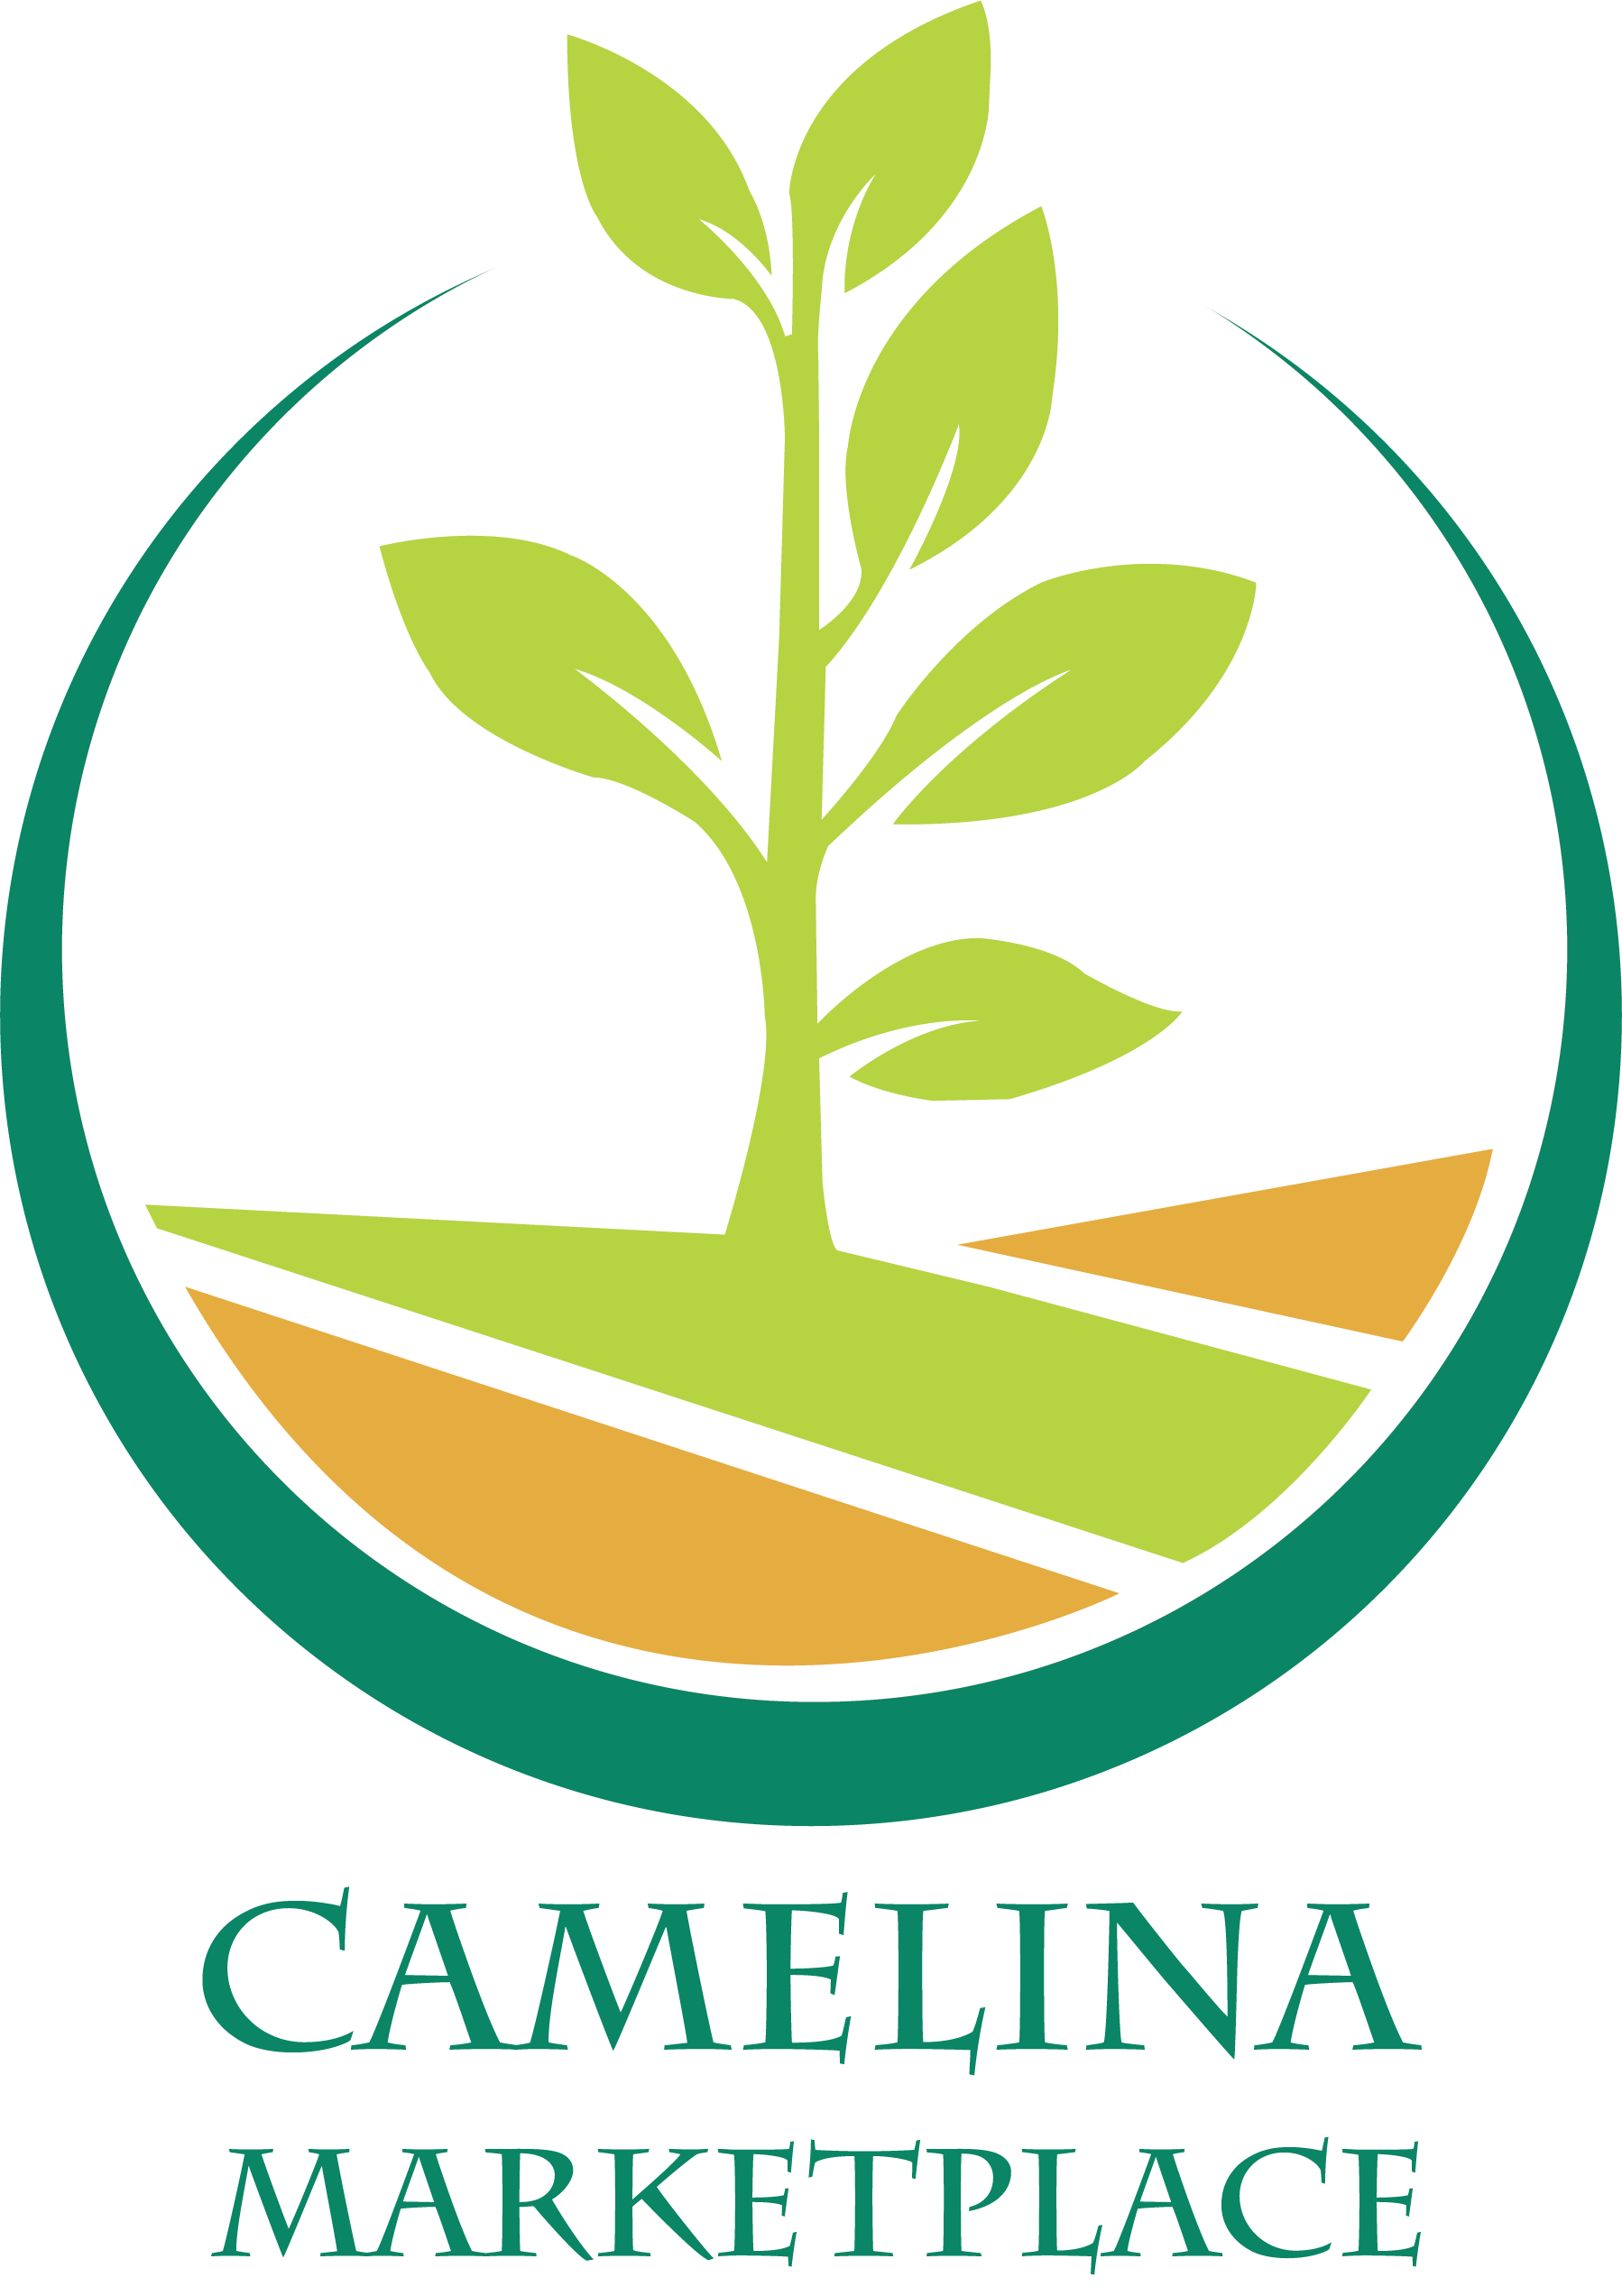 Camelina Marketplace